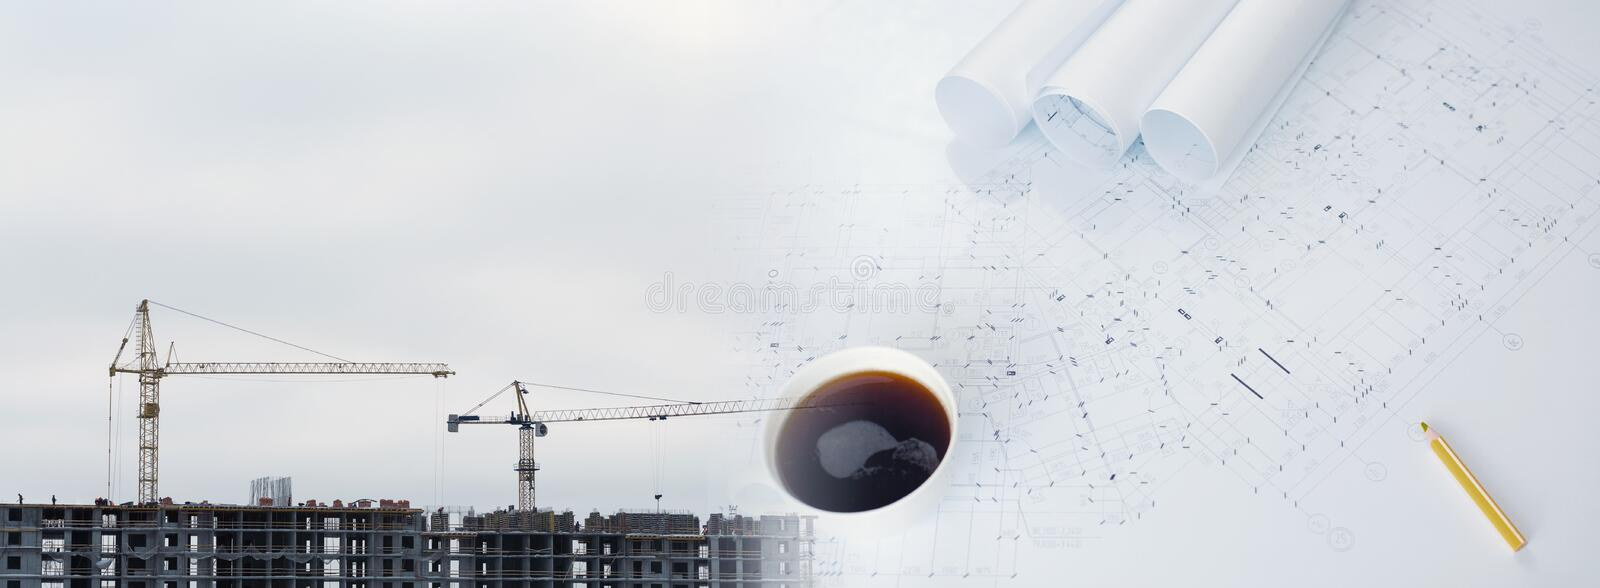 Collage with construction plans, cranes. On a construction site stock images